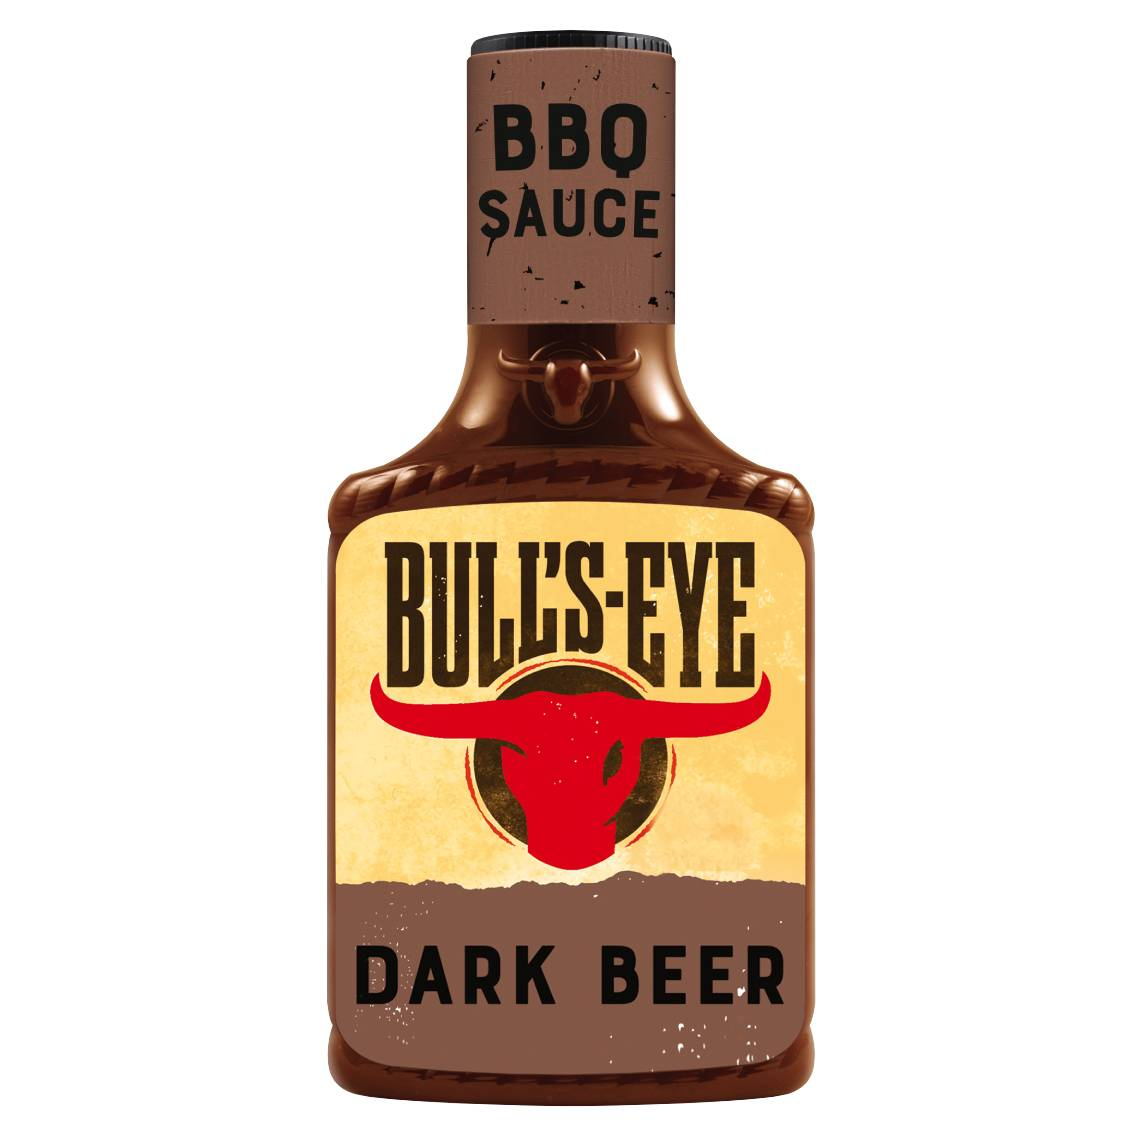 Bull's Eye Dark Beer 360g Verre image